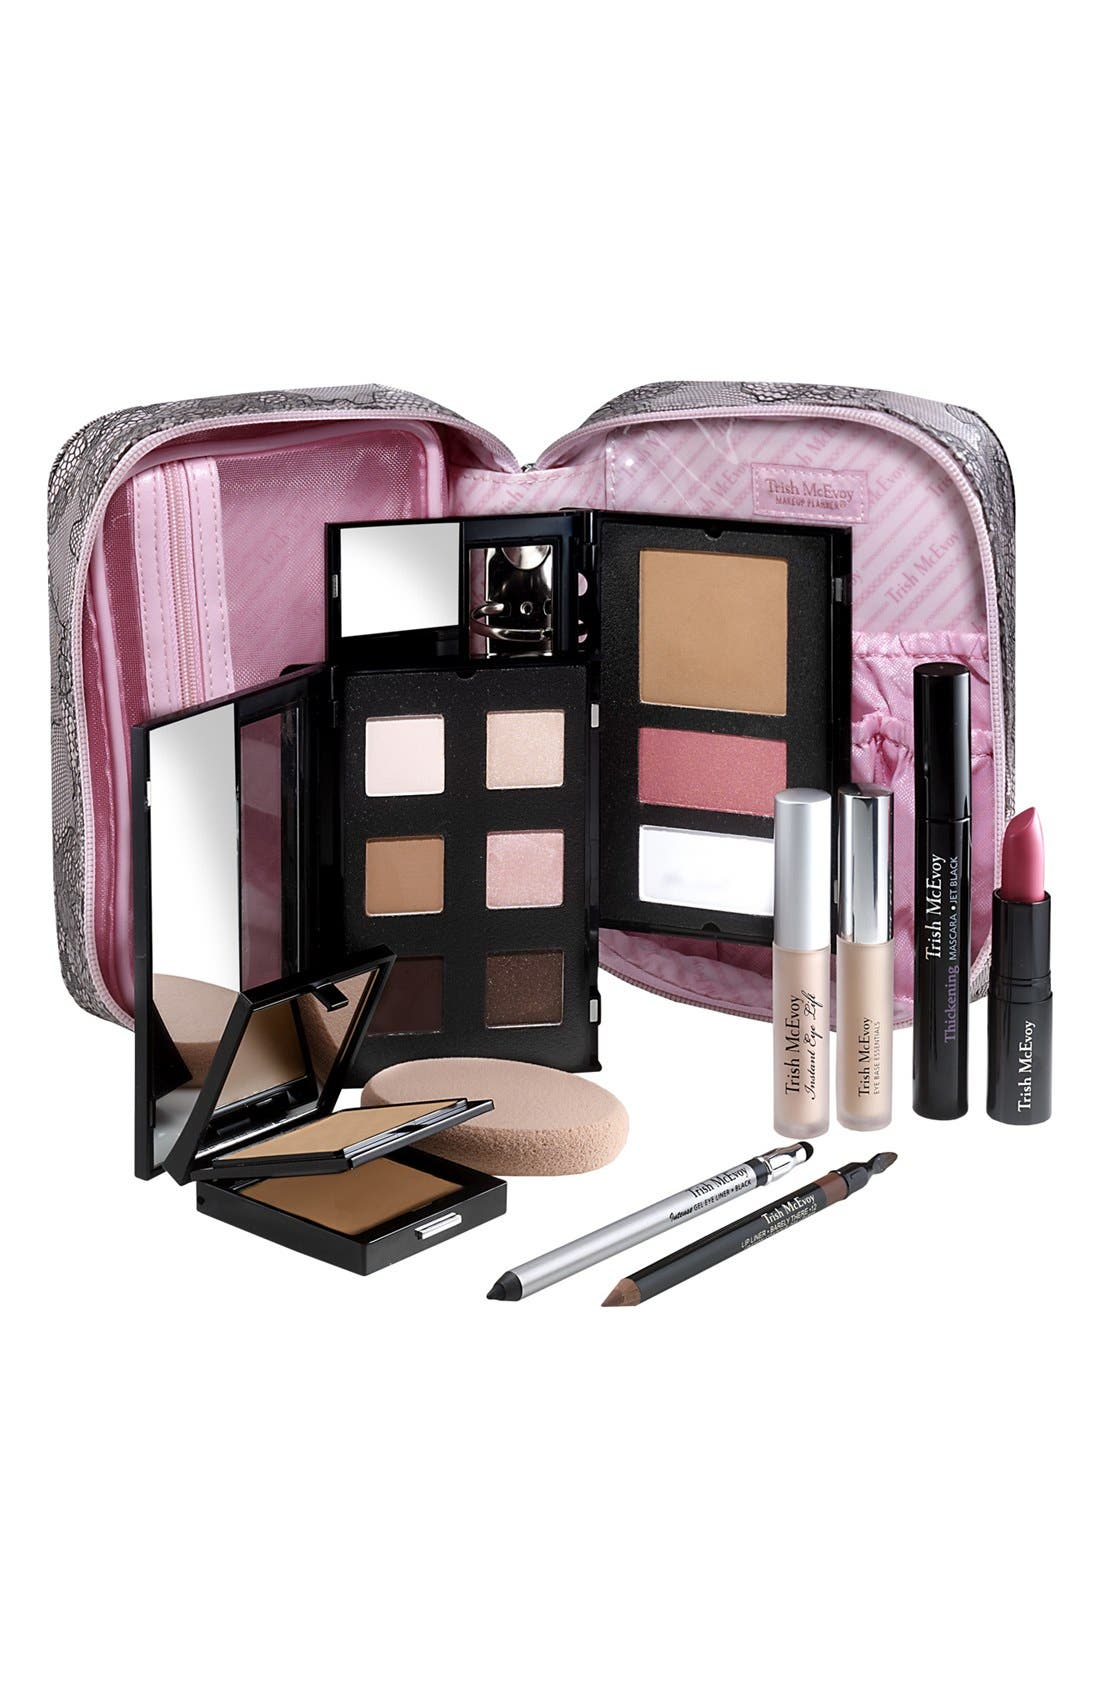 Alternate Image 1 Selected - Trish McEvoy Power of Makeup® Planner Collection Pure Romance ($565 Value)